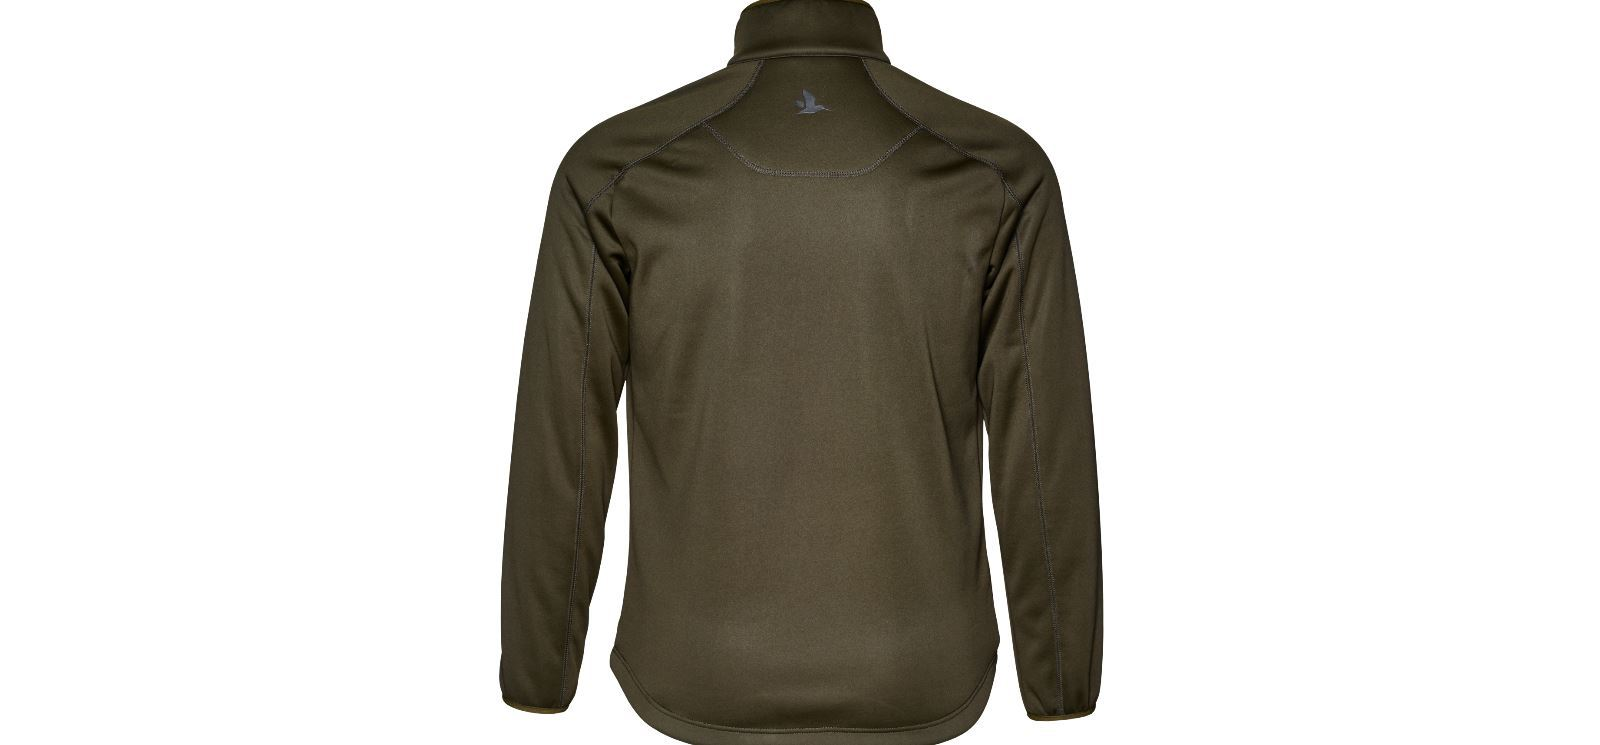 Seeland Hawker Storm Fleece Jacket - reid outdoors